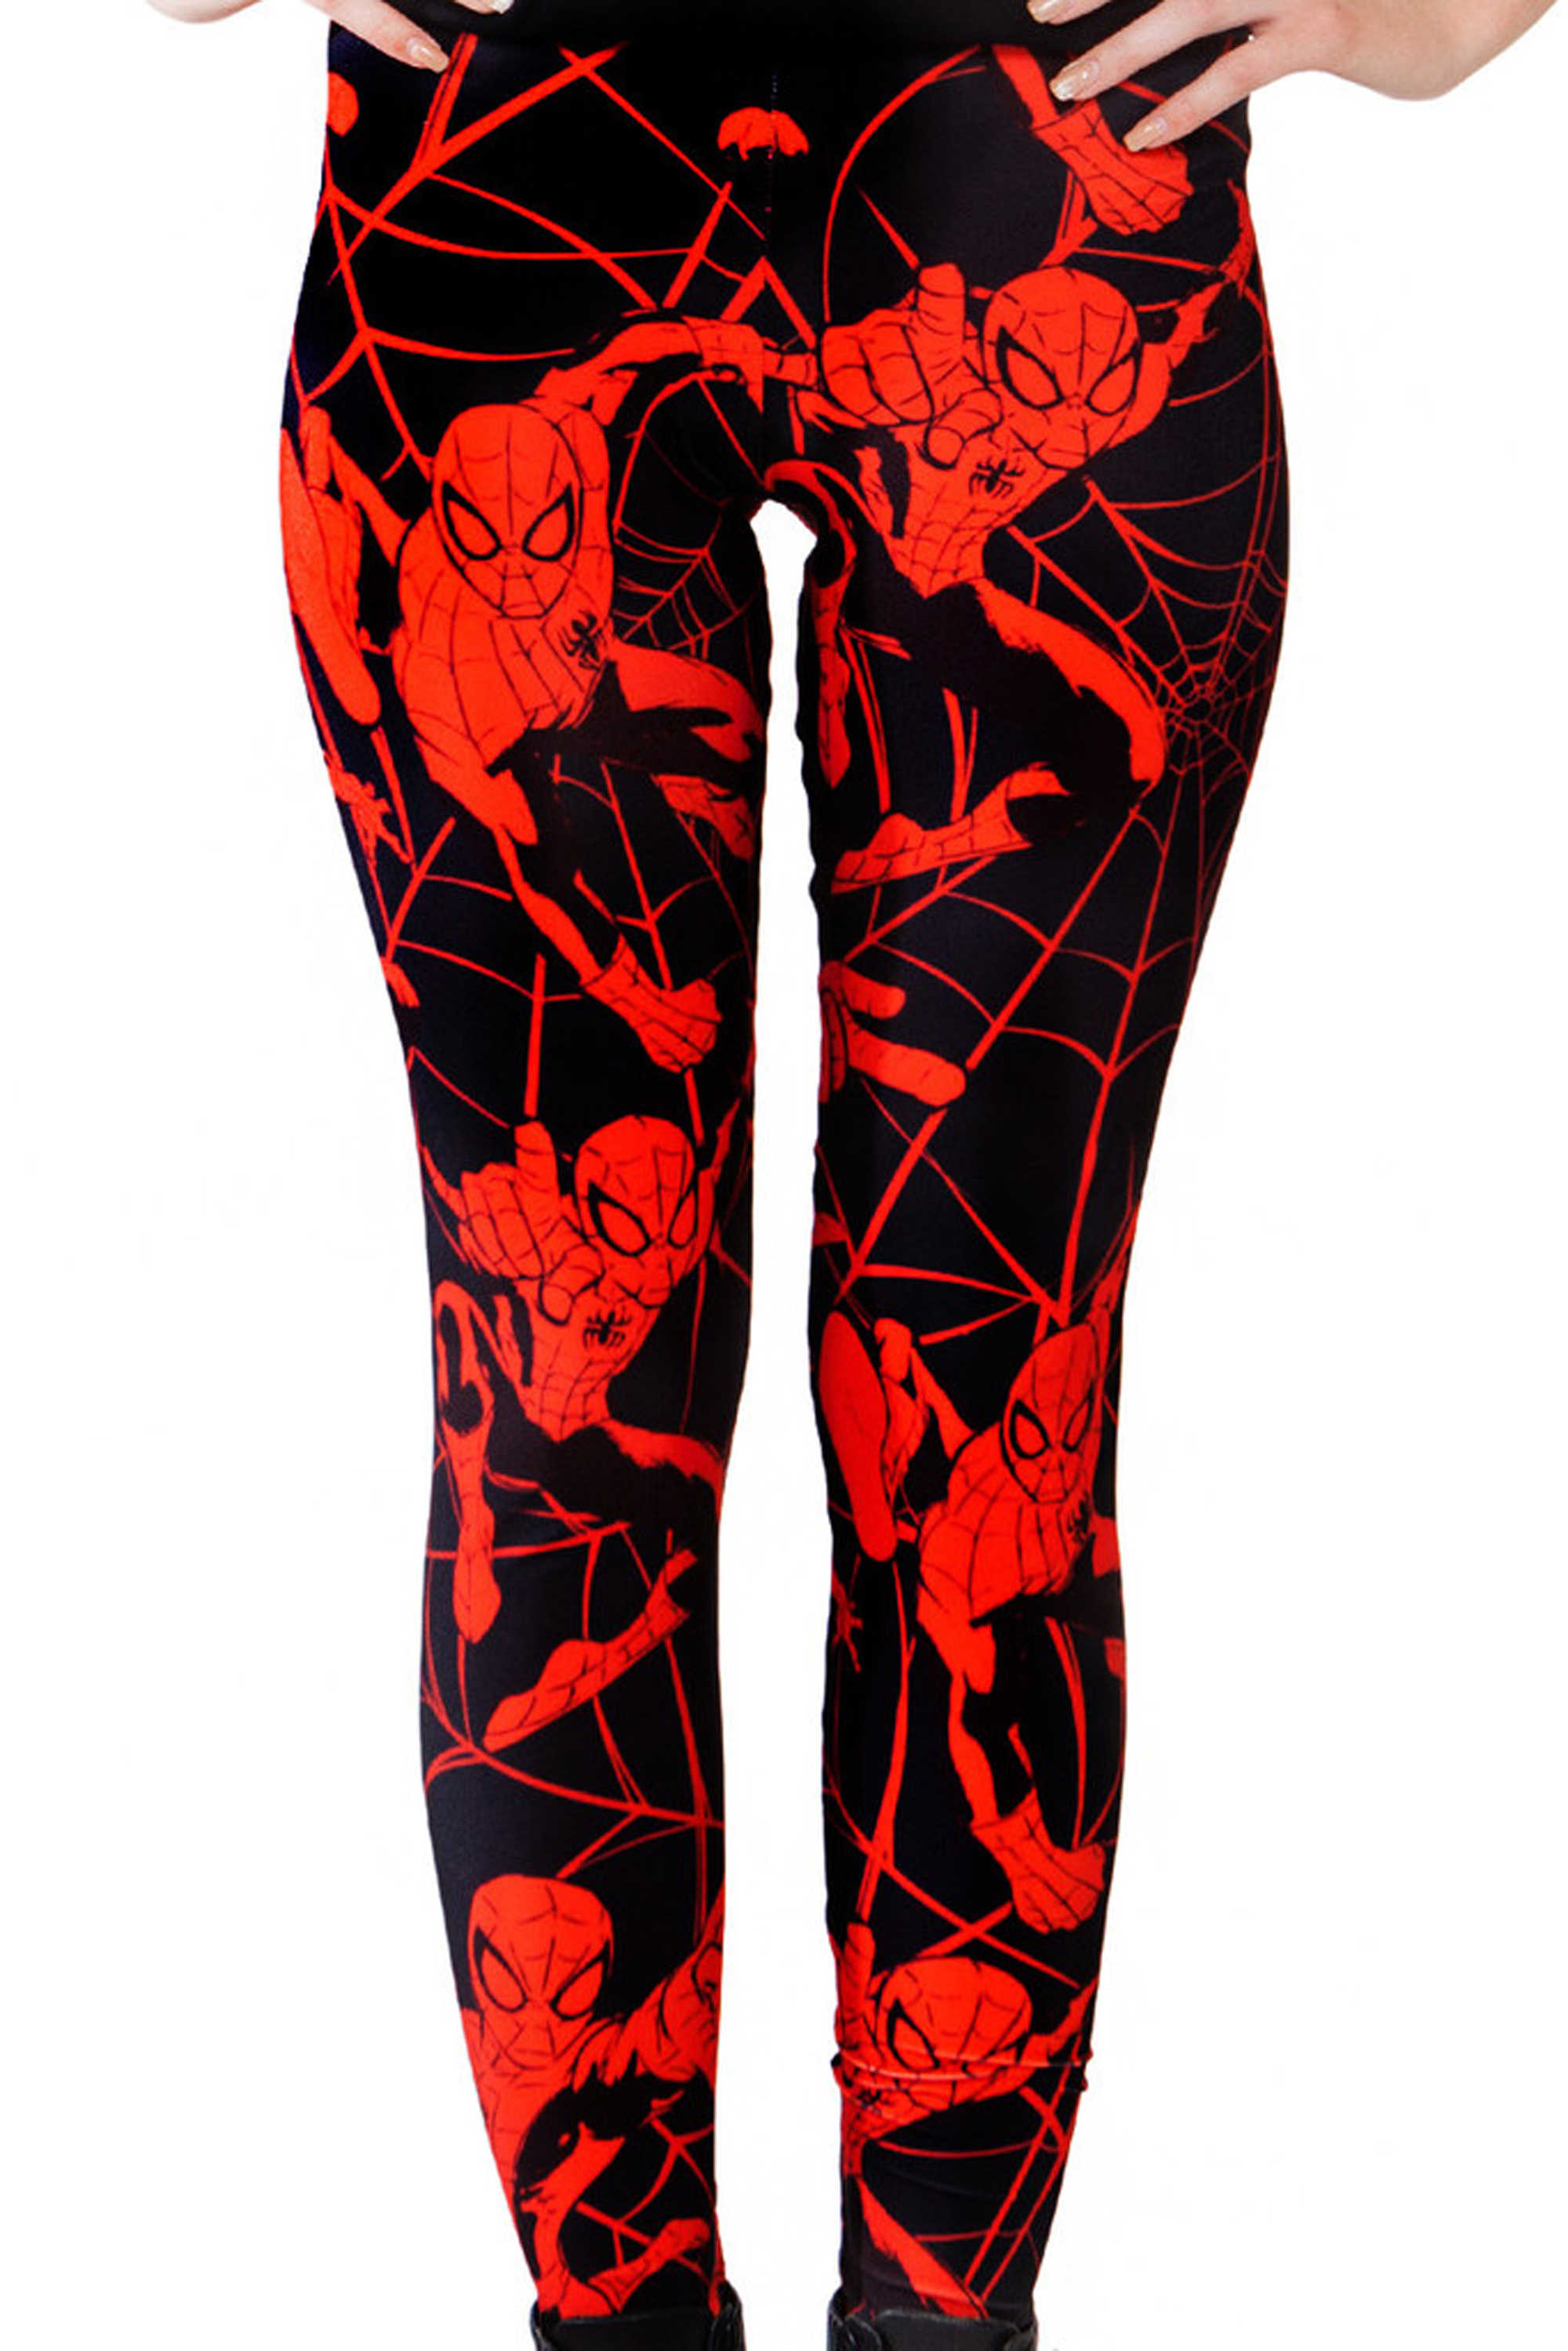 c5d793bf820e53 Dark Red Spiderman Print Leggings Women Sexy Slim Fitness Leggings High  Waist Elastic Casual Leggings Plus